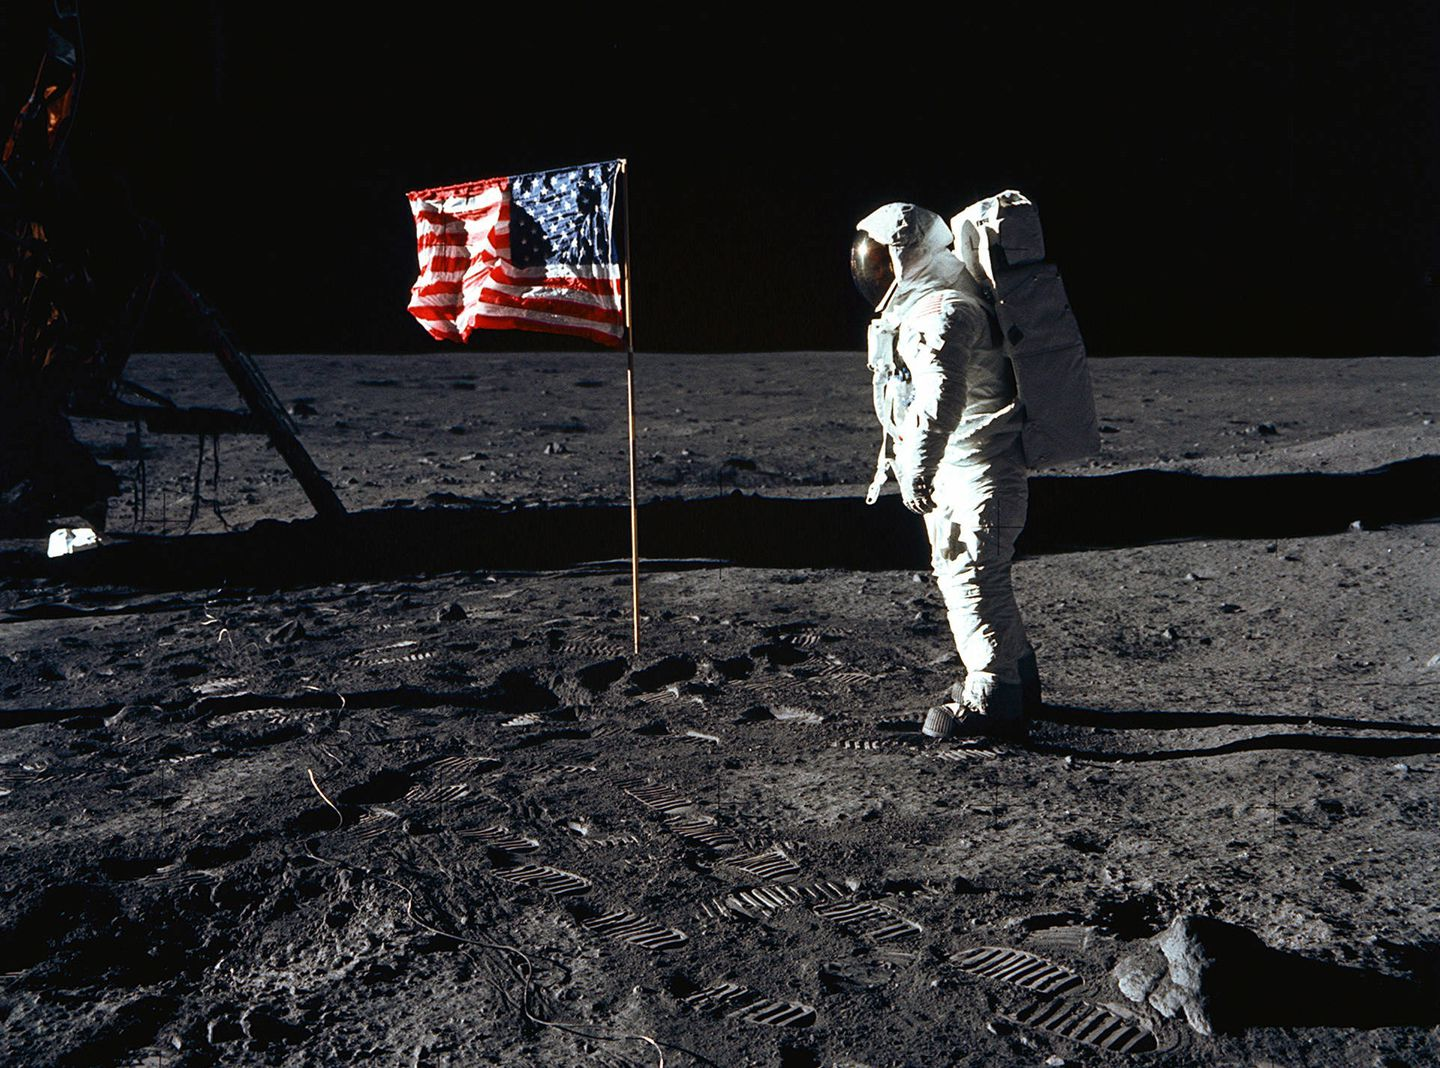 U.S. astronauts of the Apollo 11 take their first steps on the moon's surface, July 20th, 1969